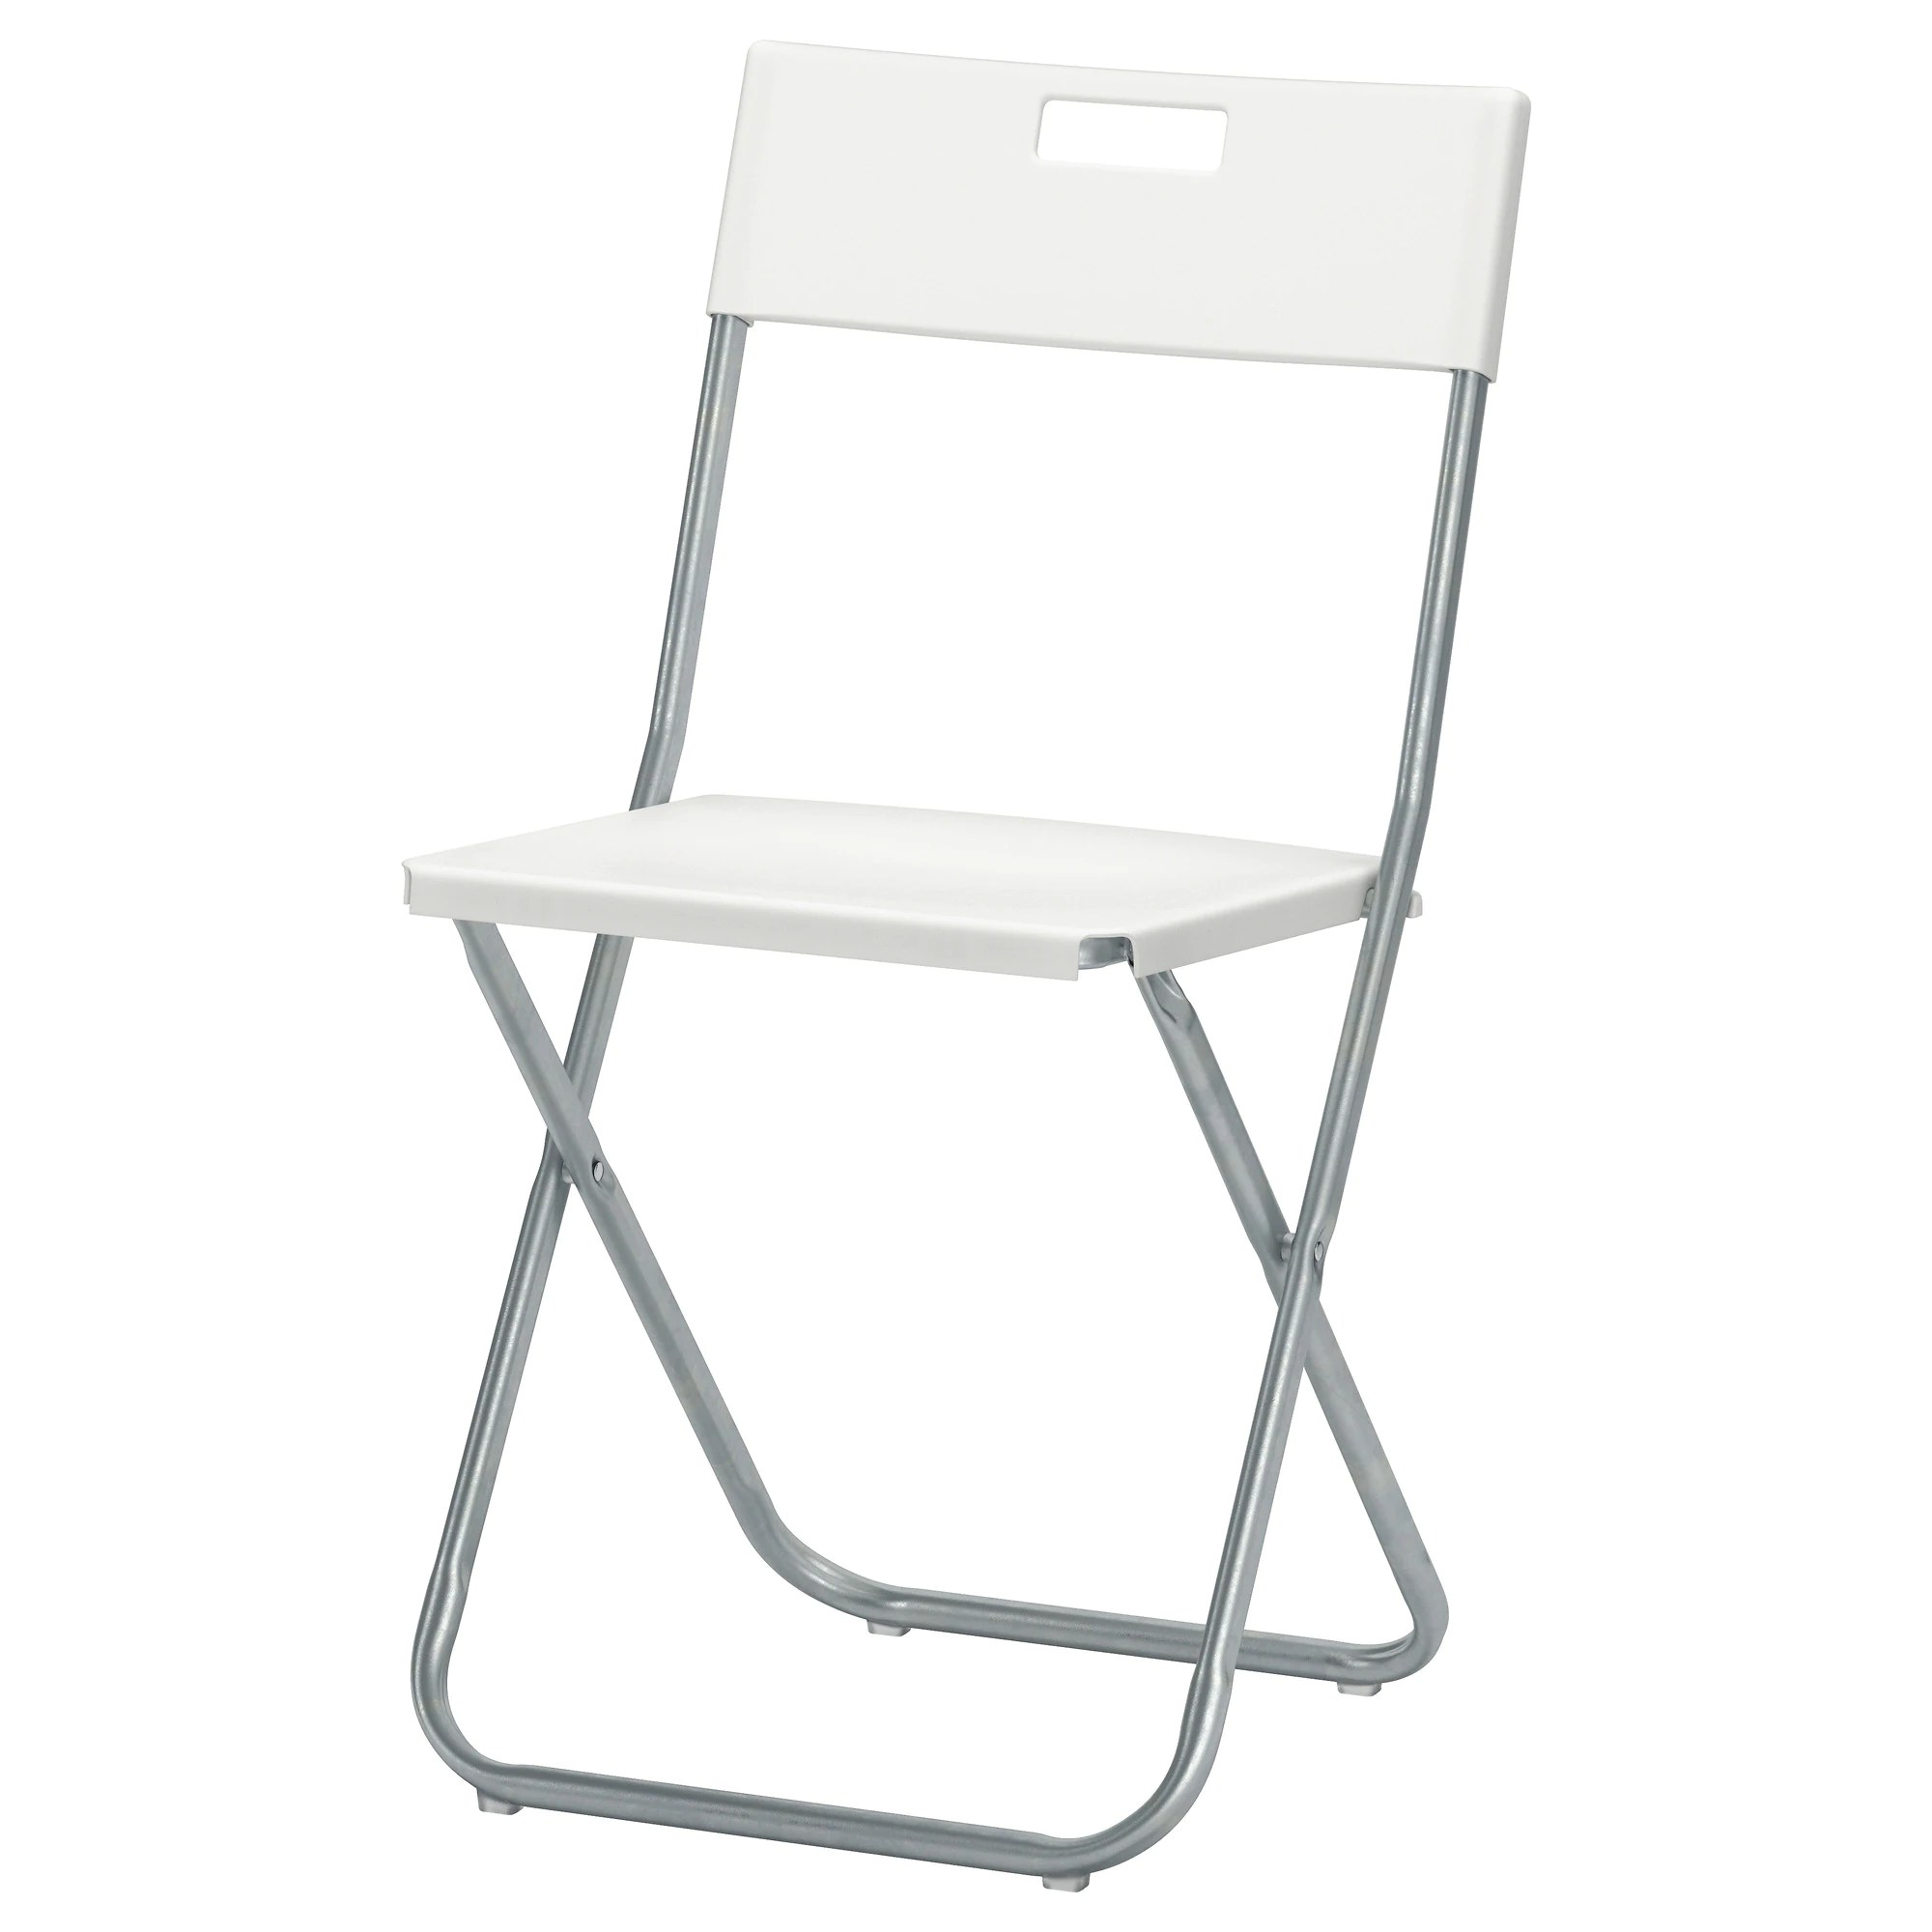 Collapsible Chair Gunde Folding Chair White